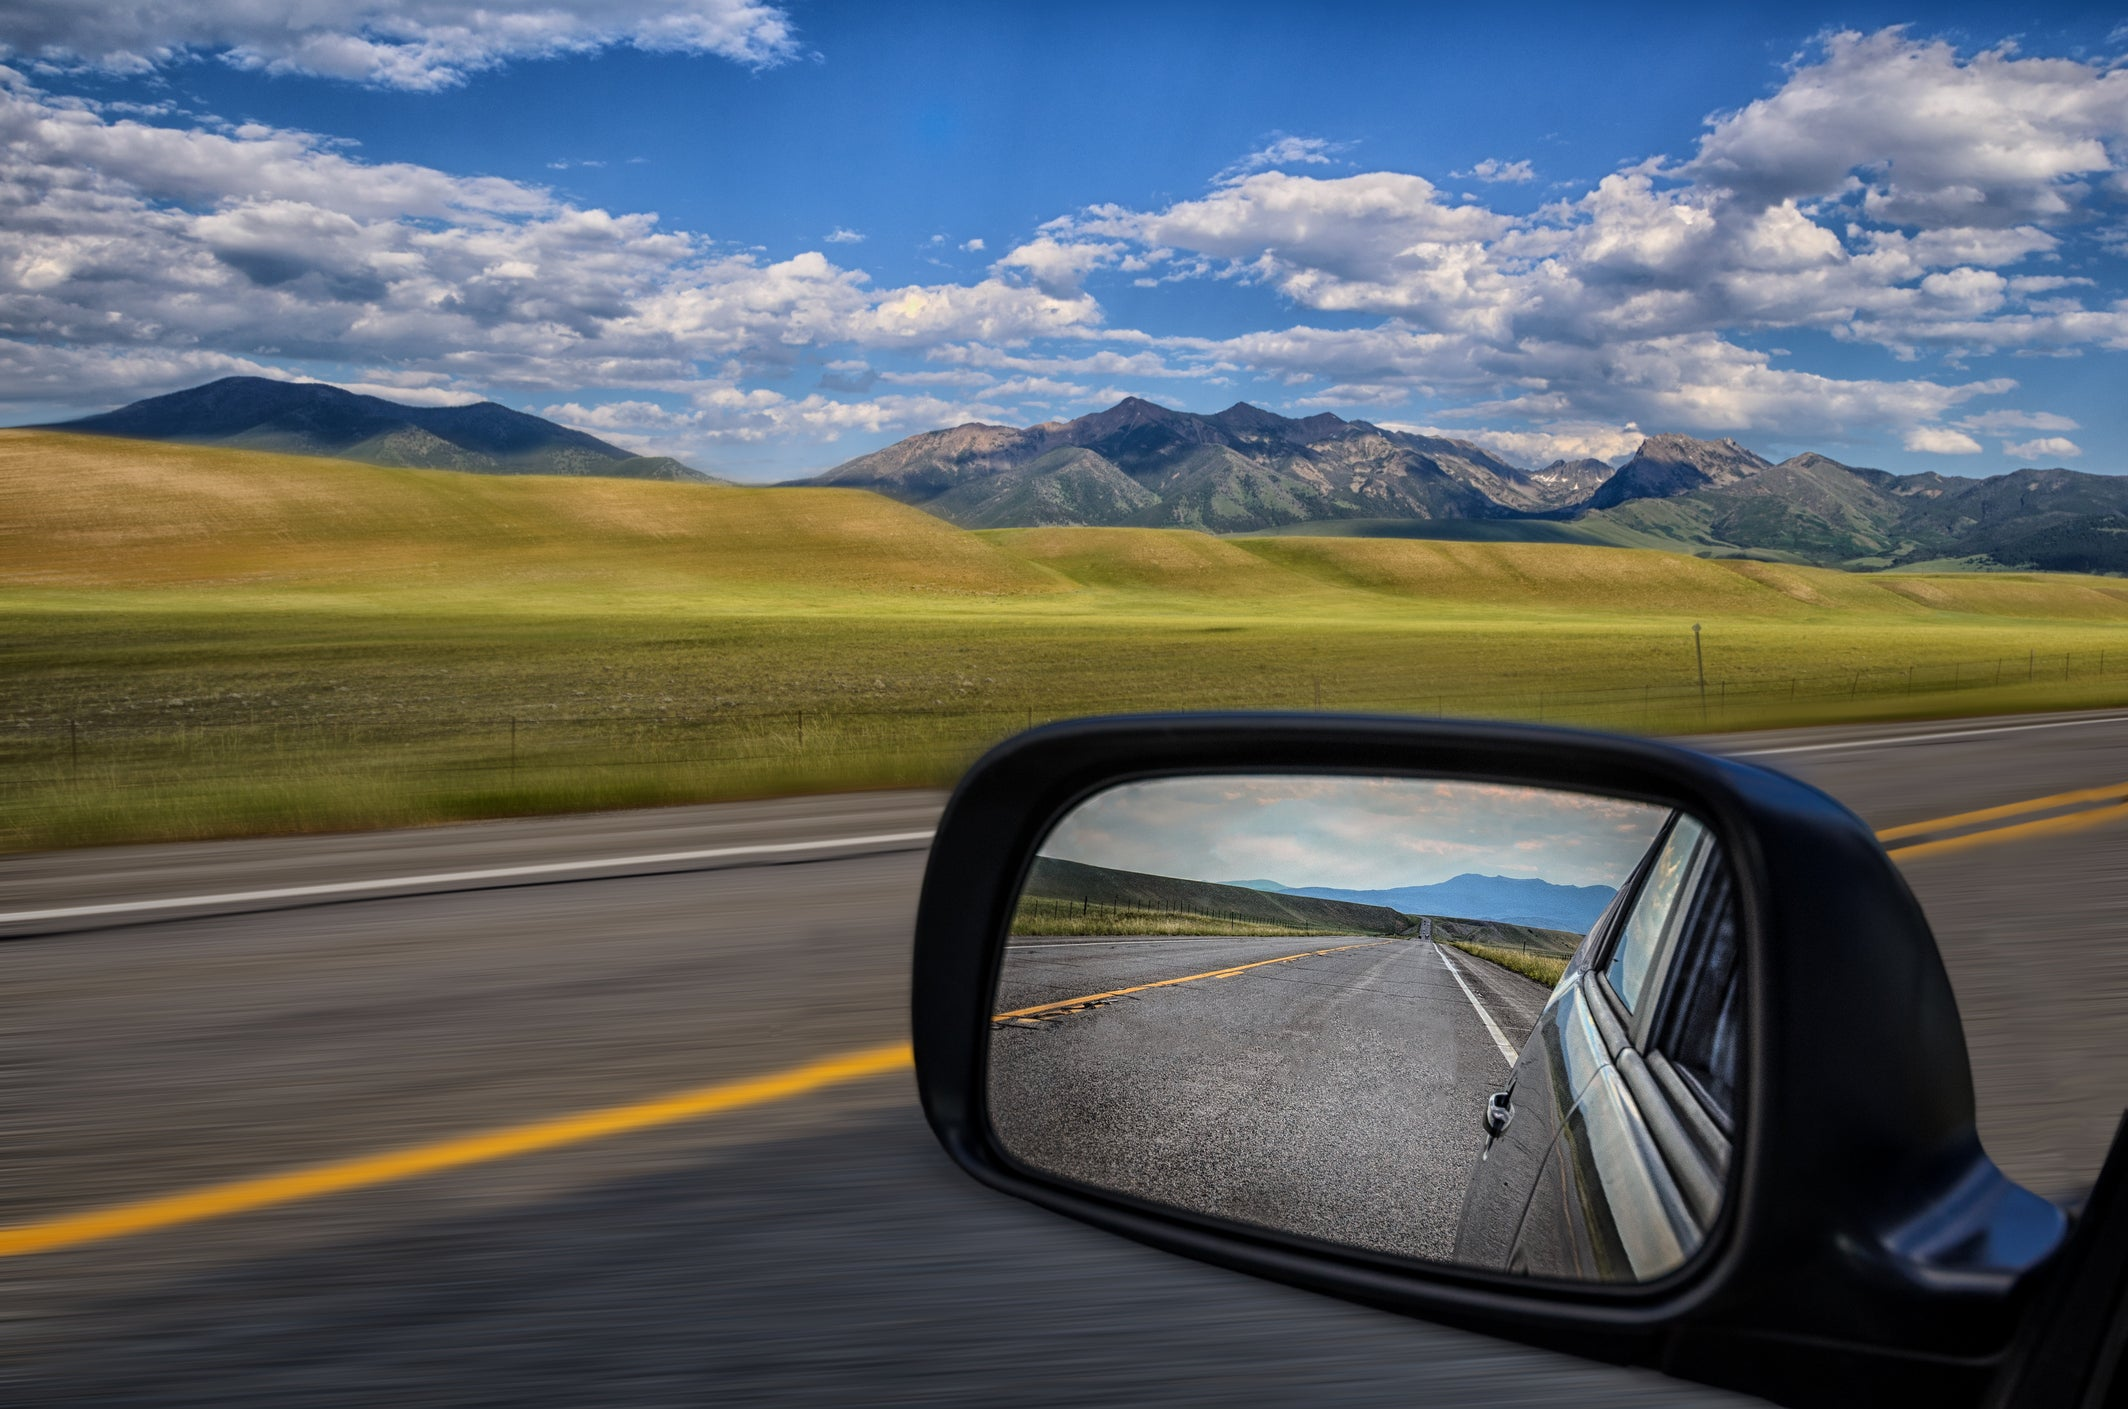 The side mirror of a car, with a country highway, mountains, and a blue sky with clouds in the background.